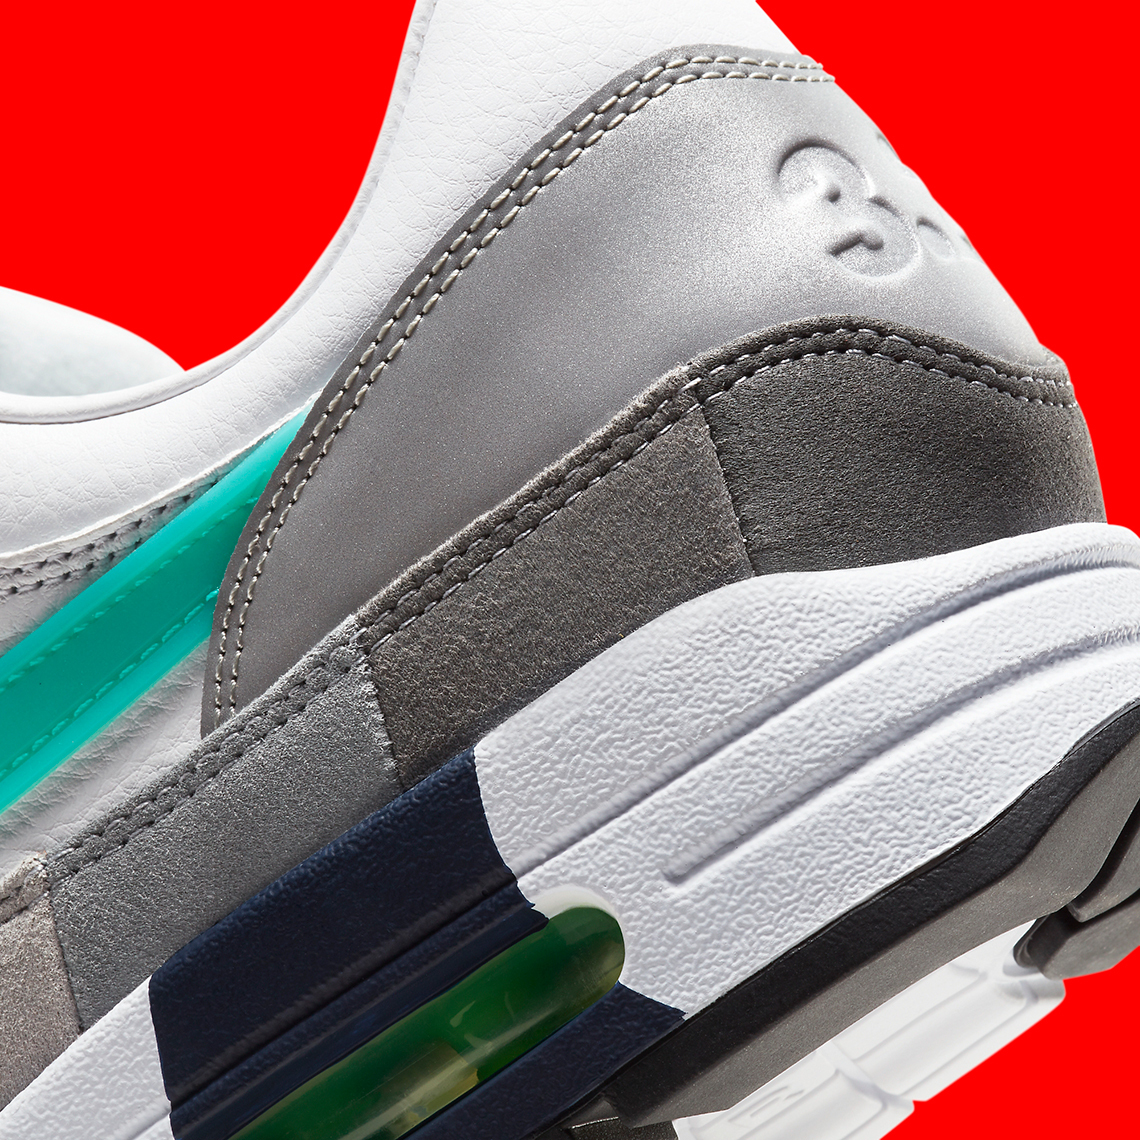 Nike Air Max 1 ''EOI'' - ''Evolution Of Icons'' - CW6541-100